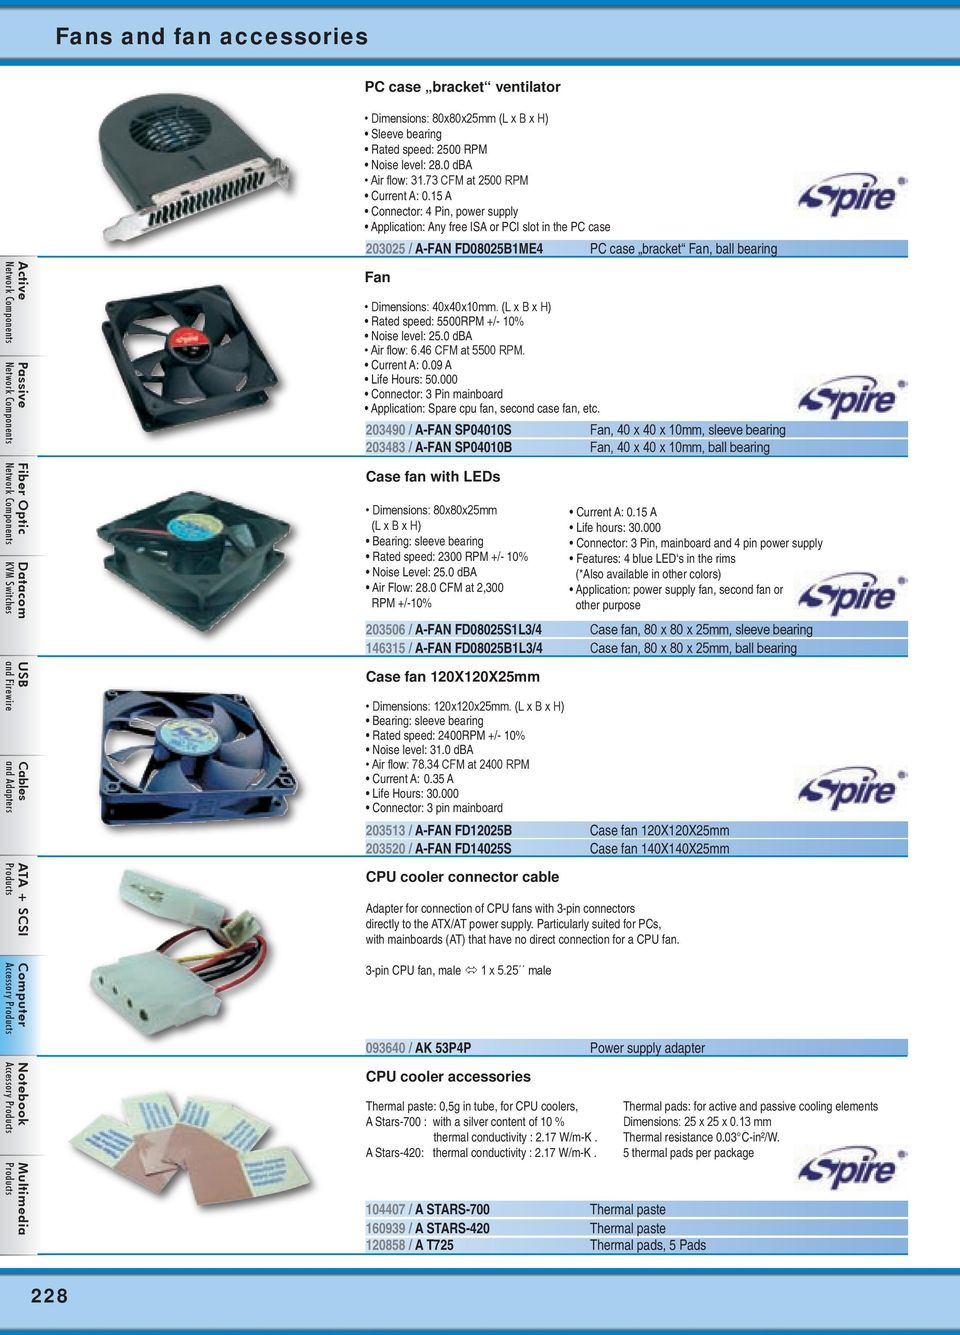 Computer Accessory Products Pdf Charger Adaptor Original Laptop Notebook Hp 195v 231a Pin L X B H Rated Speed 5500rpm 10